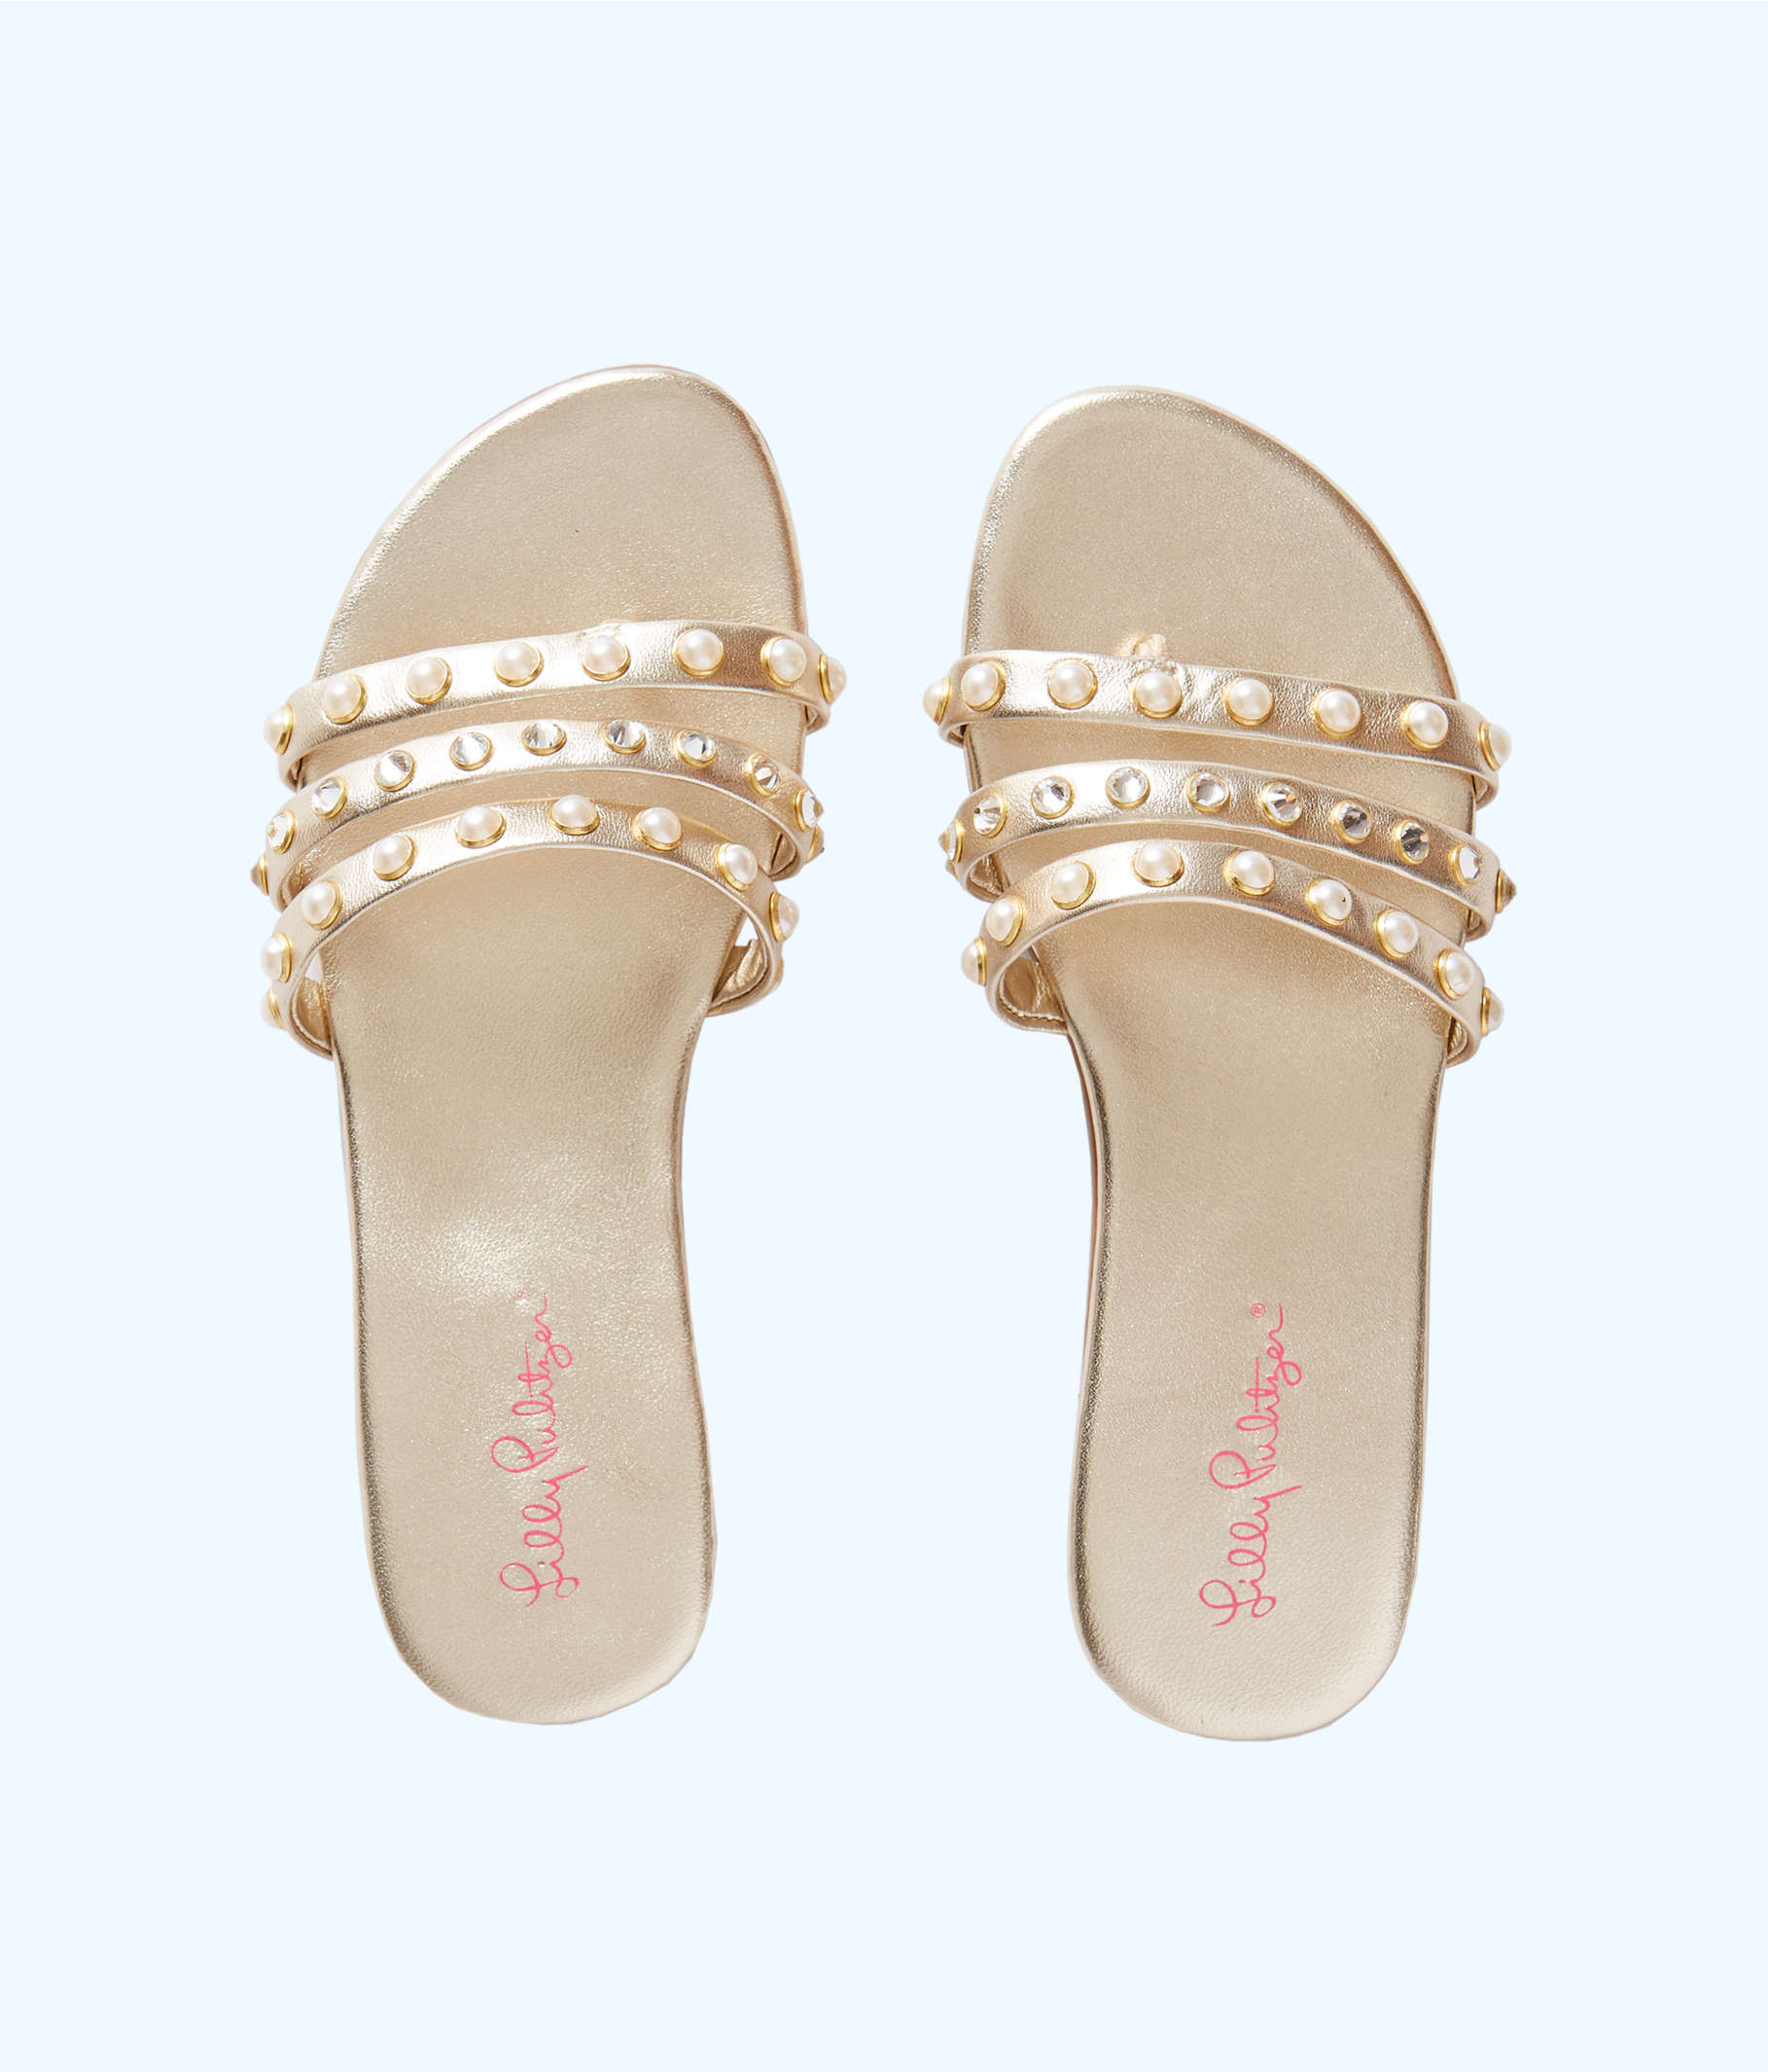 Tabbie Embellished Sandal, Gold Metallic, large